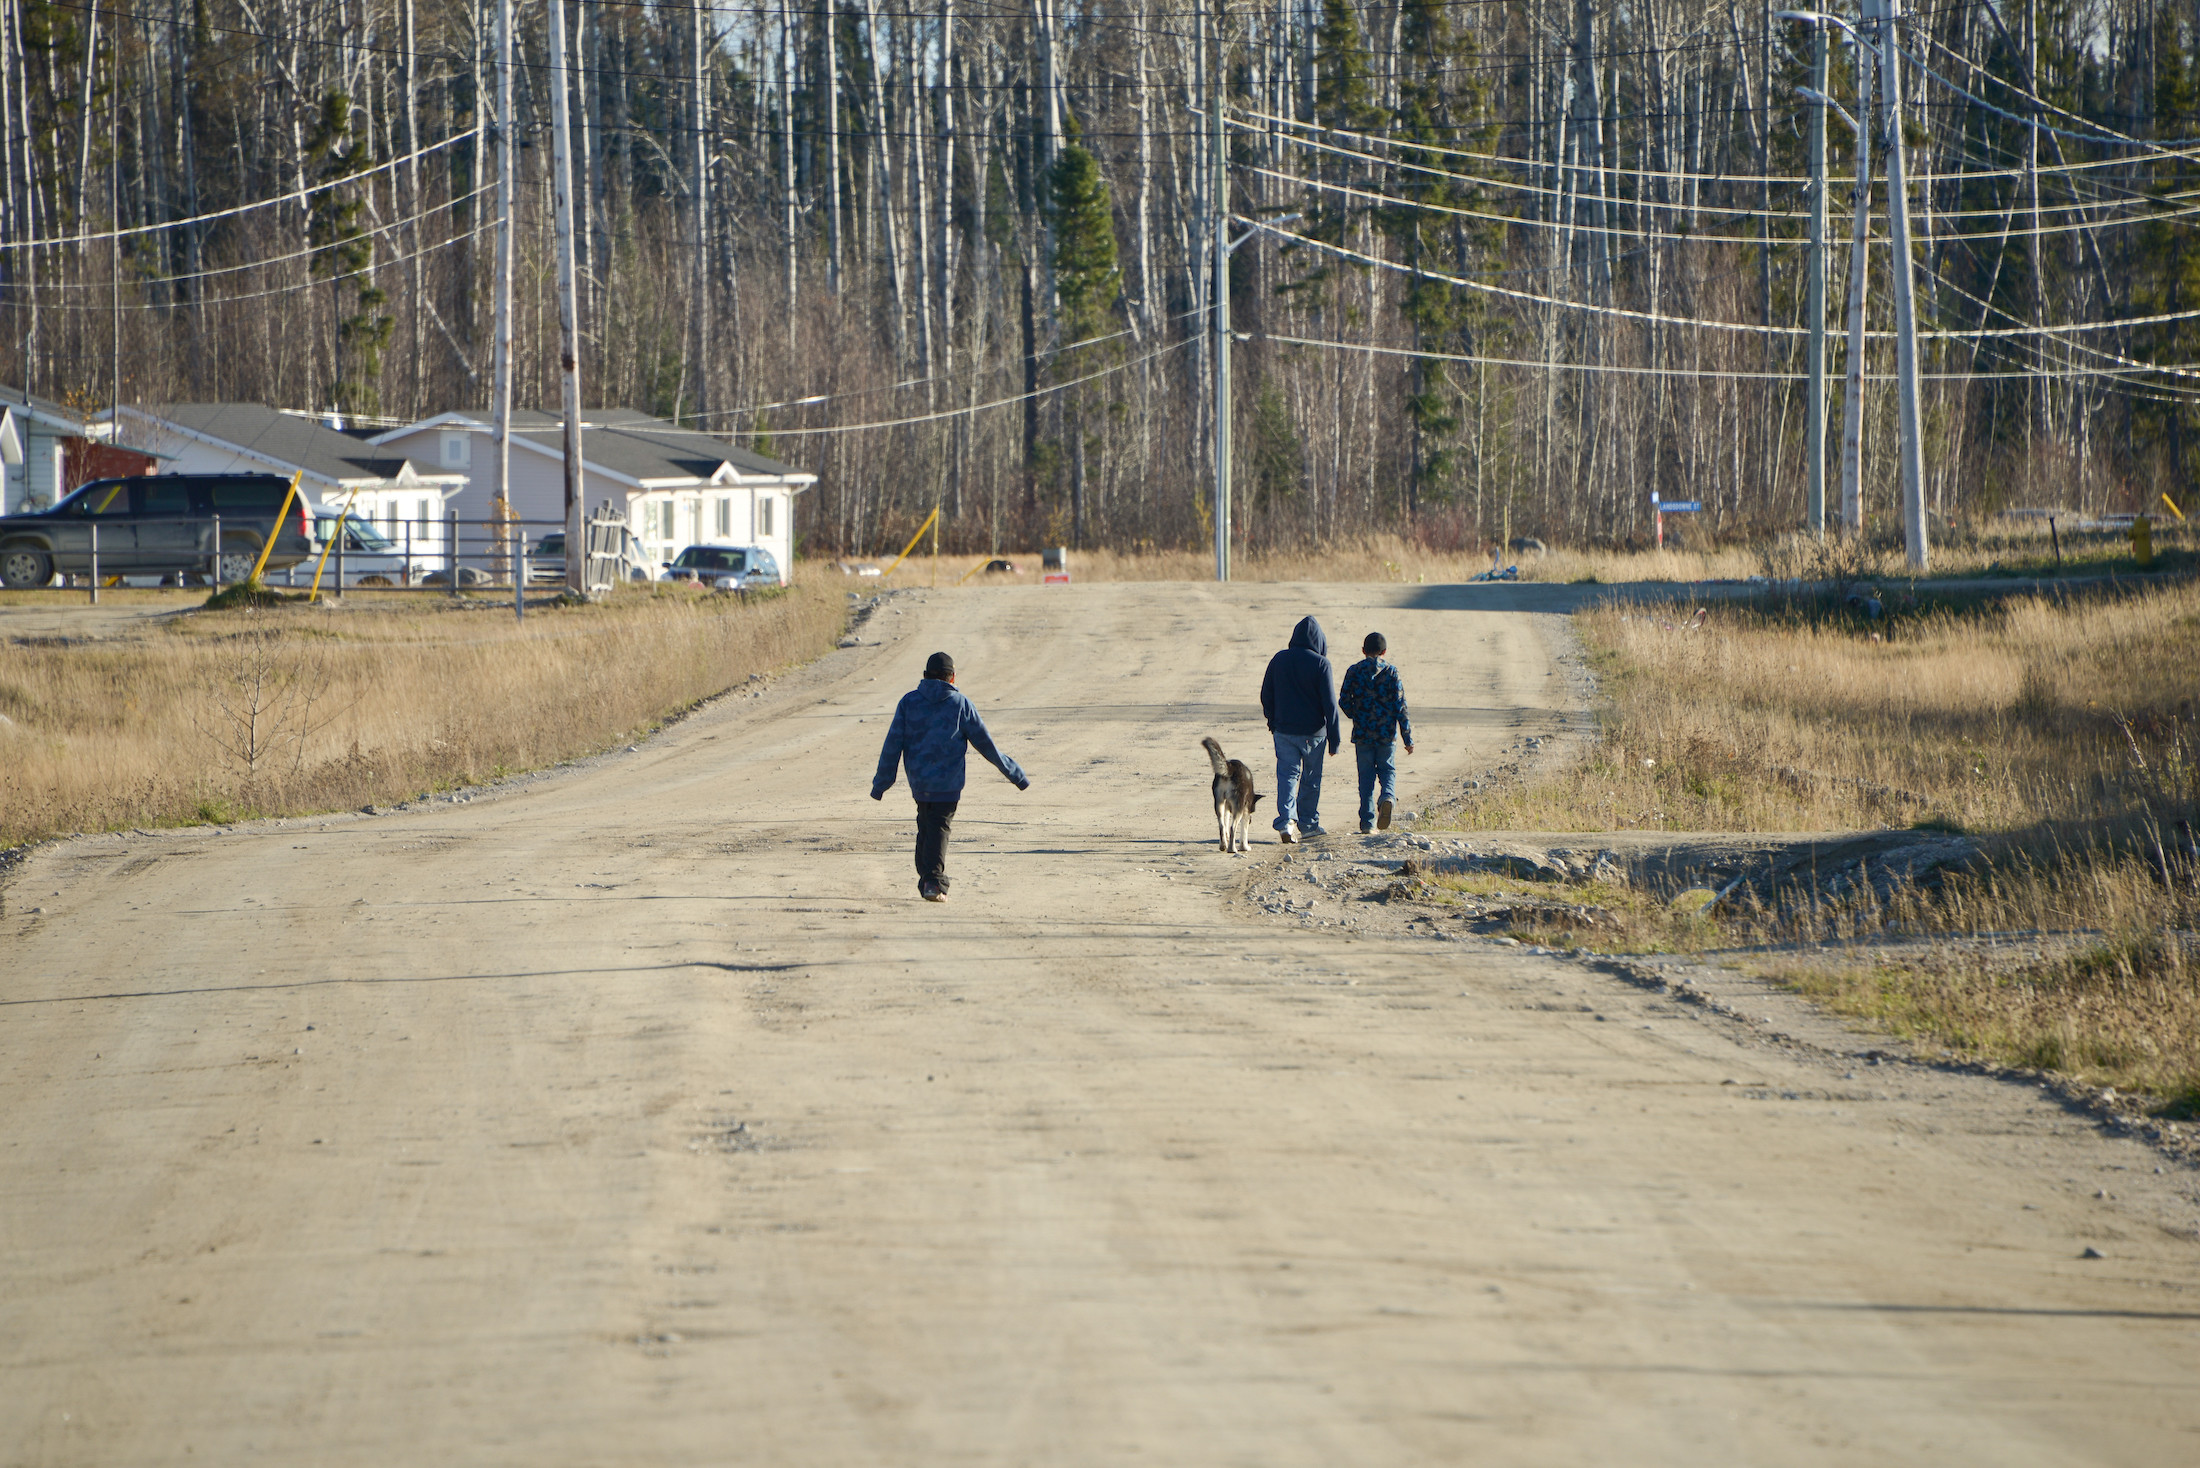 Youths walk along the road in Neskantaga First Nation, a remote community in Northern Ontario which has been on a boil water advisory since 1995. Photo: Samer Muscati / Human Rights Watch